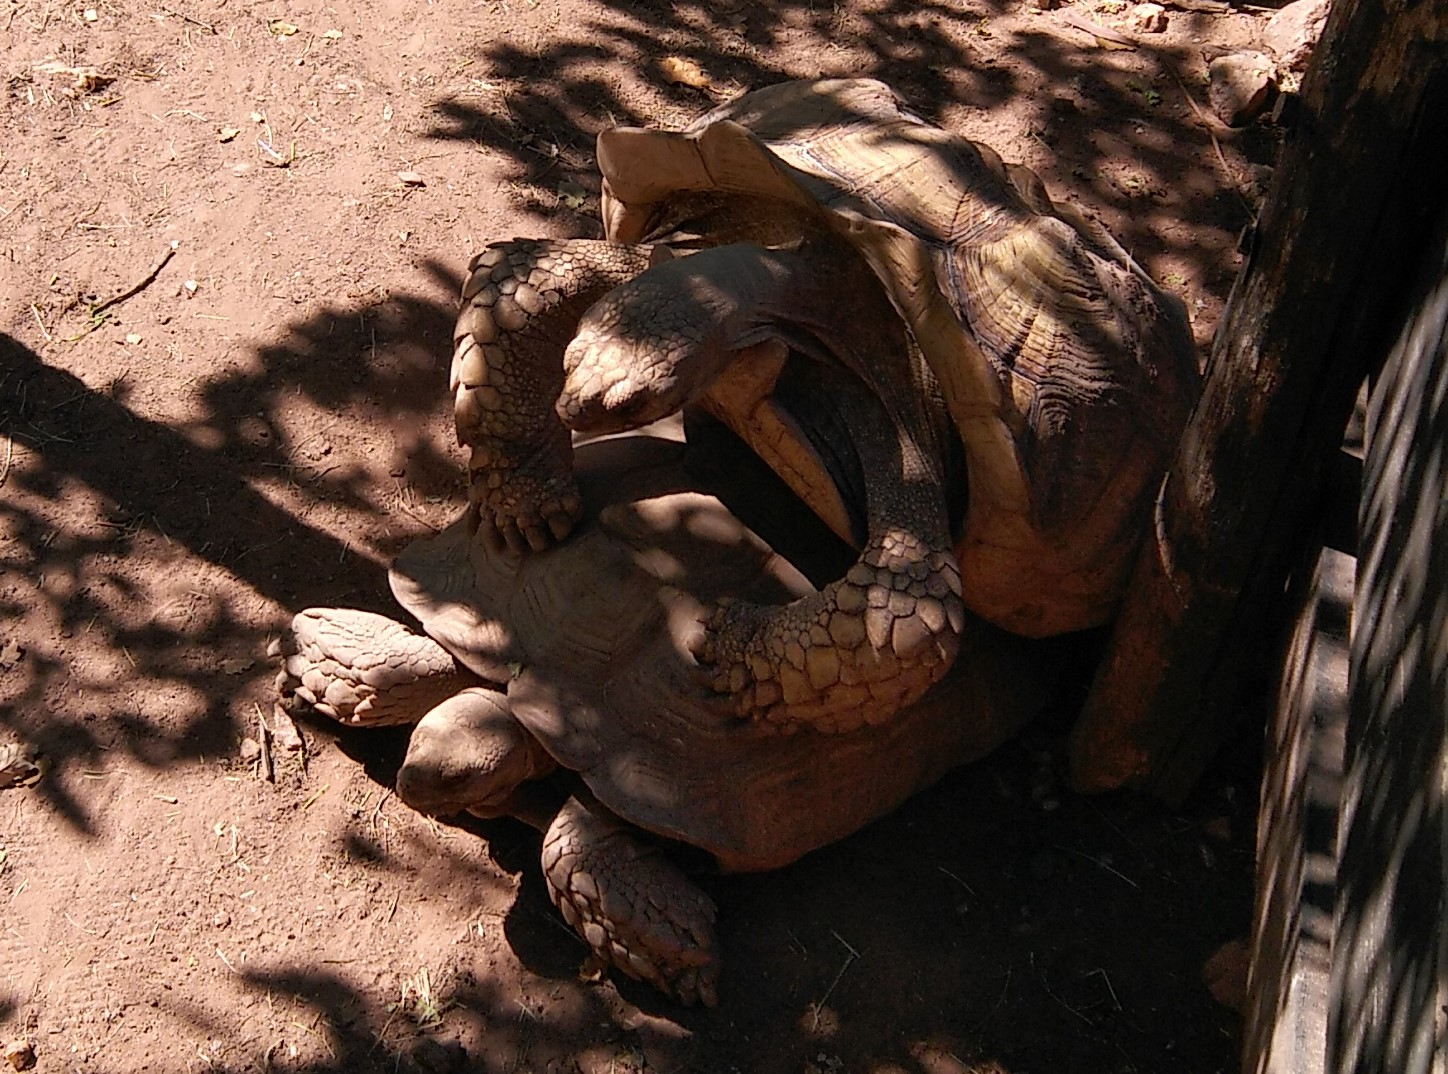 Reproduction des tortues